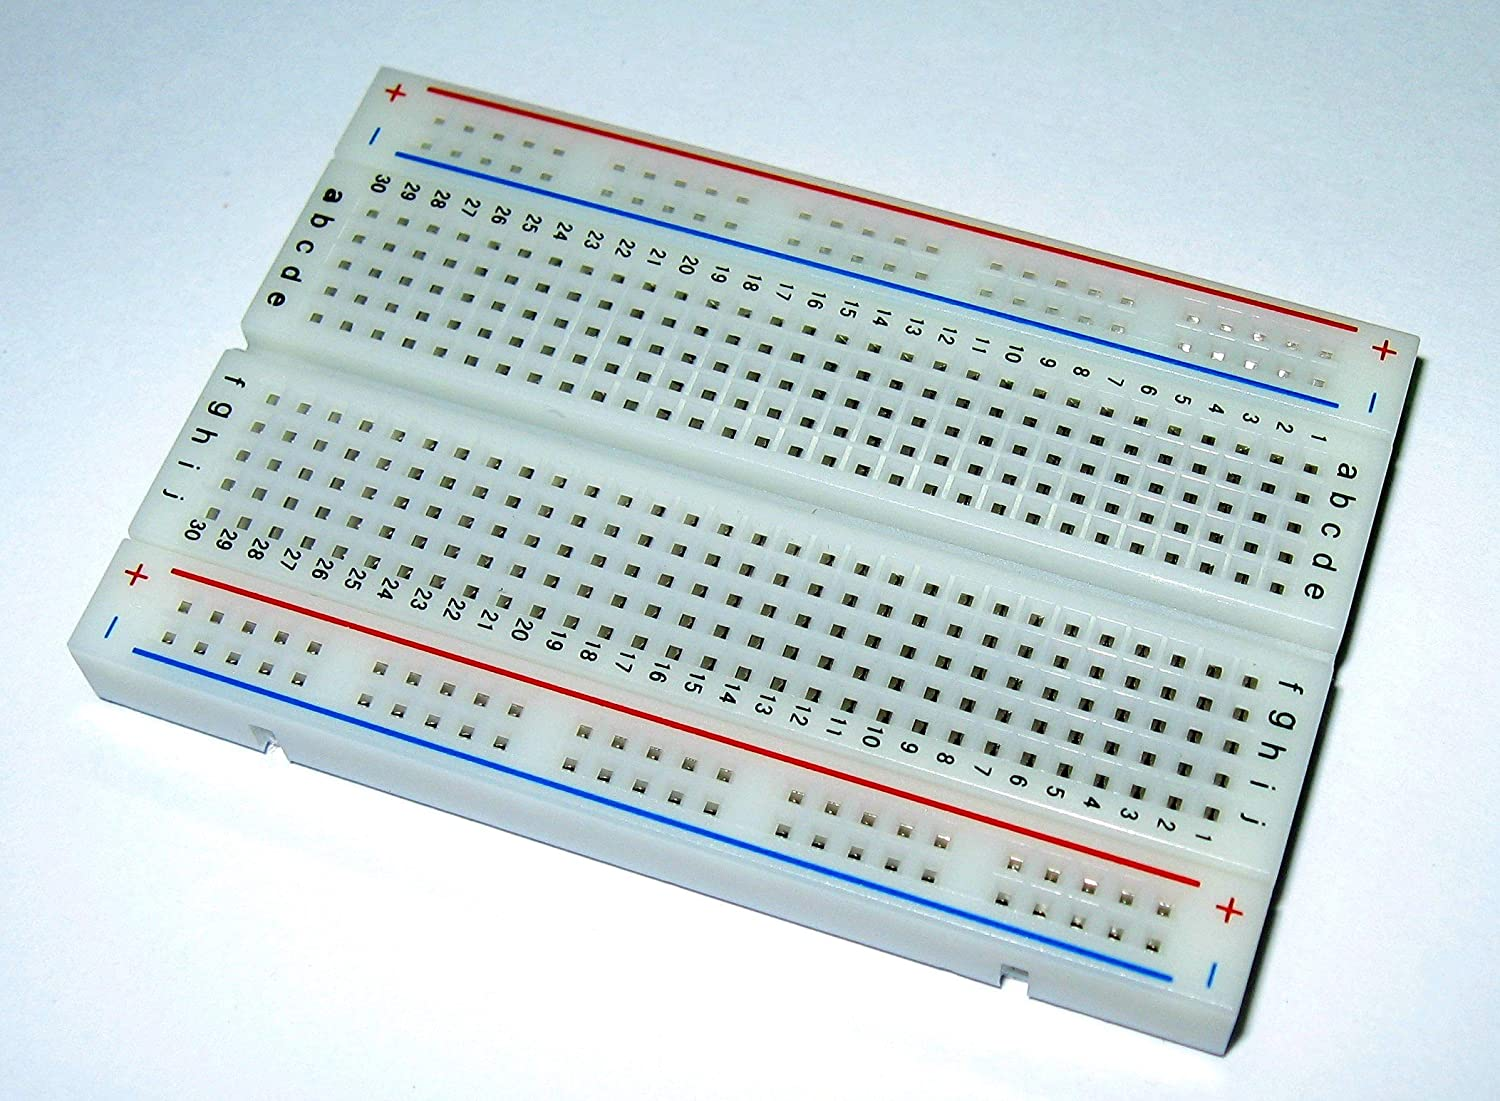 Bb400 Solderless Plug In Breadboard 400 Tie Points 4 Small Projects Electronic Circuit Power Rails 33 X 22 03in 84 55 9mm Toys Games